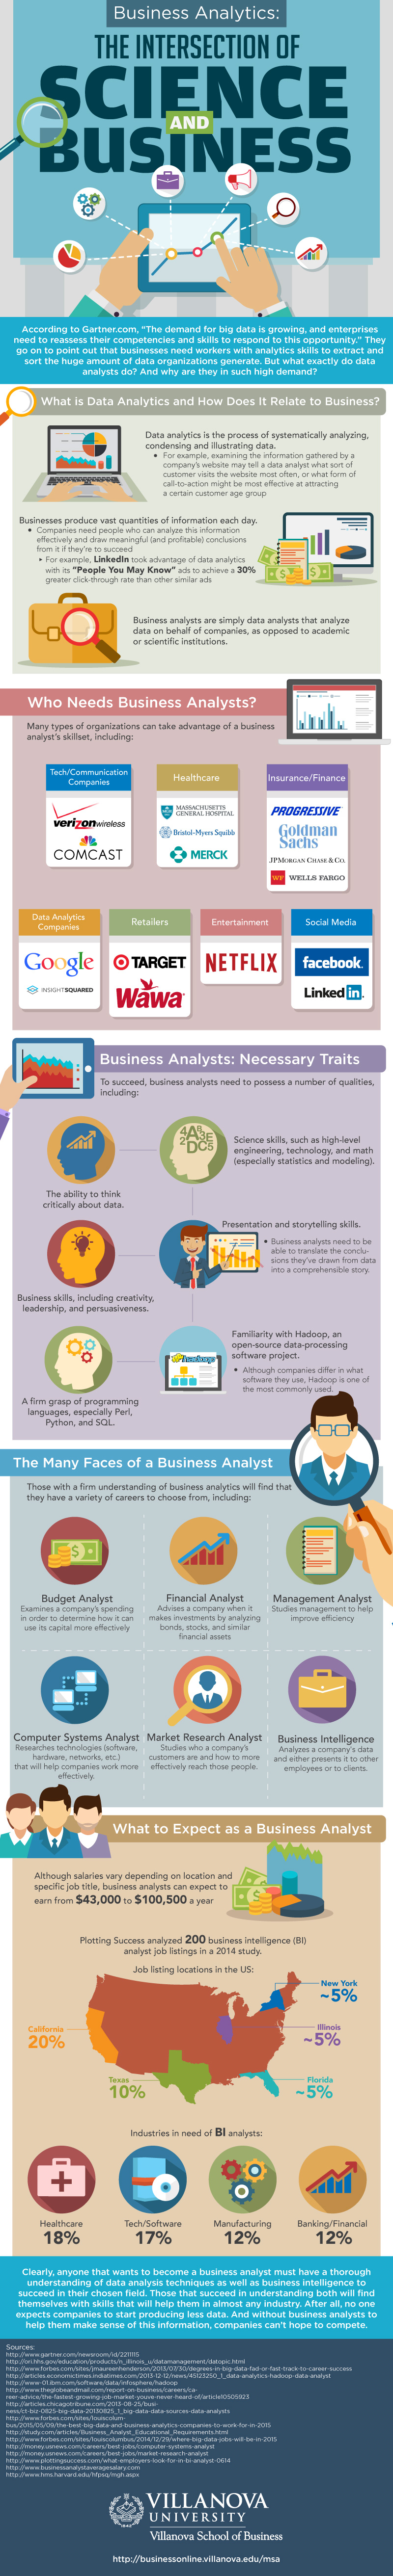 Infographic-Business-Analytics